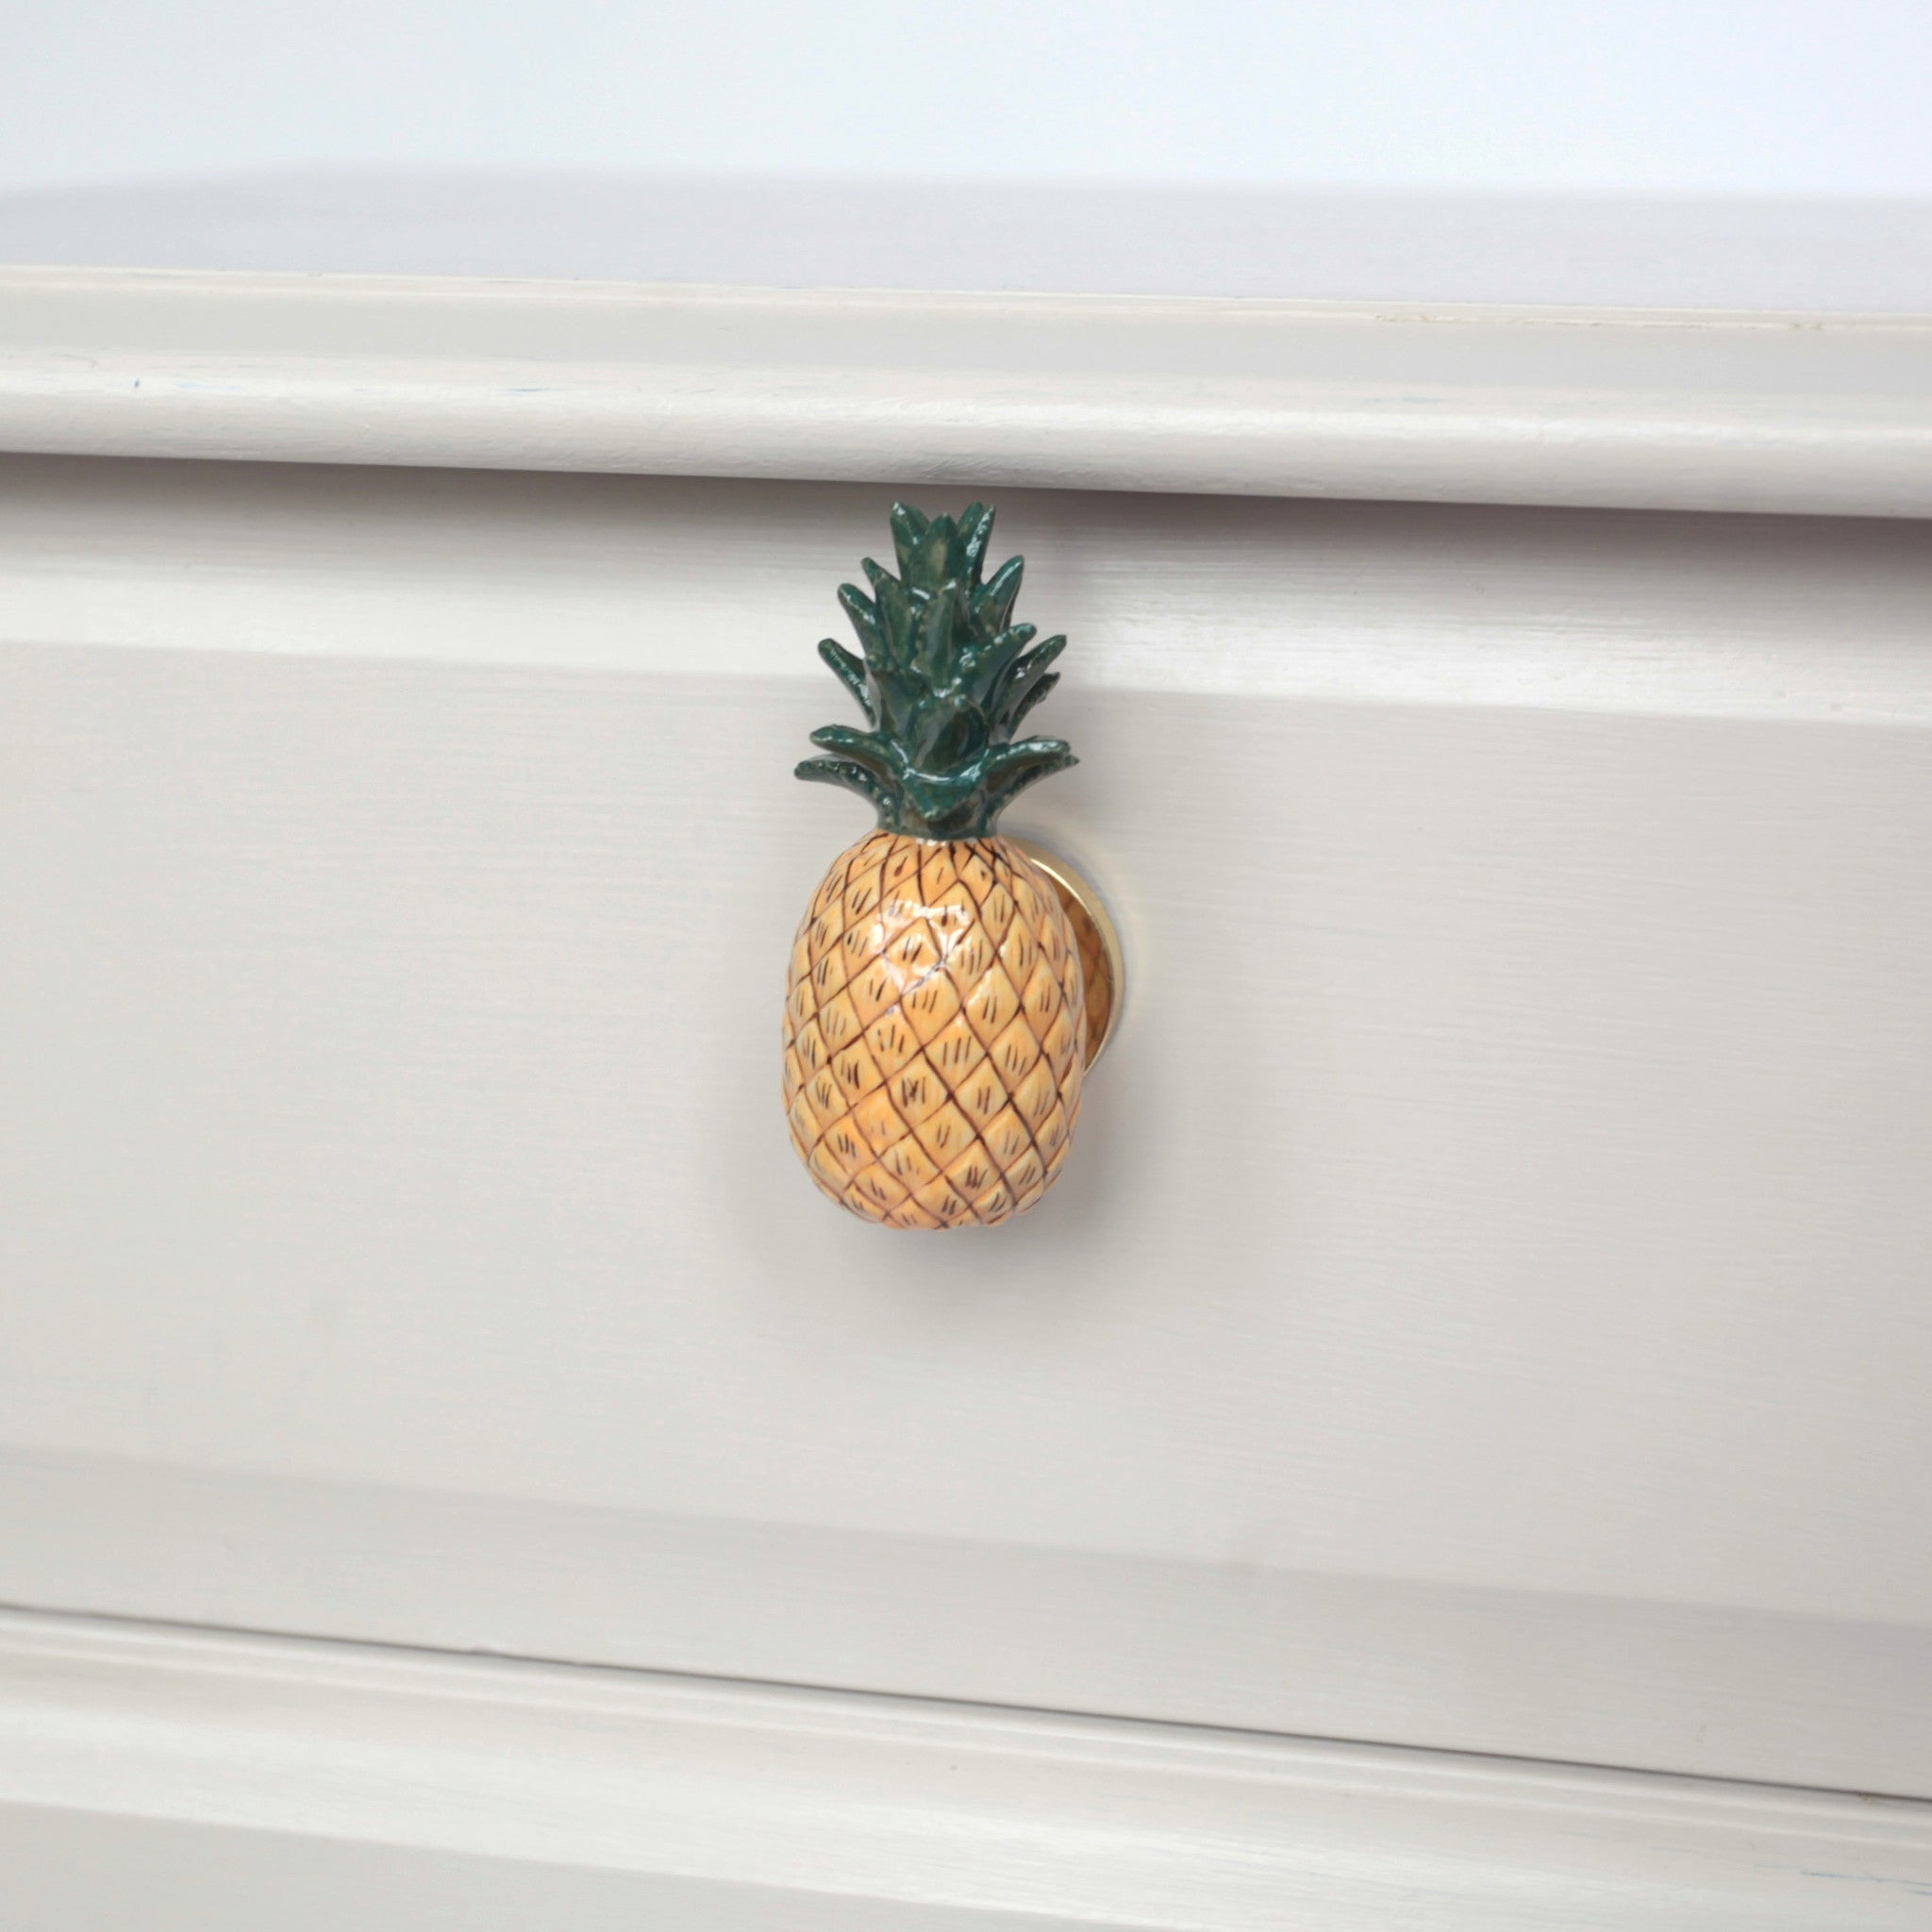 Pineapple Doorknob